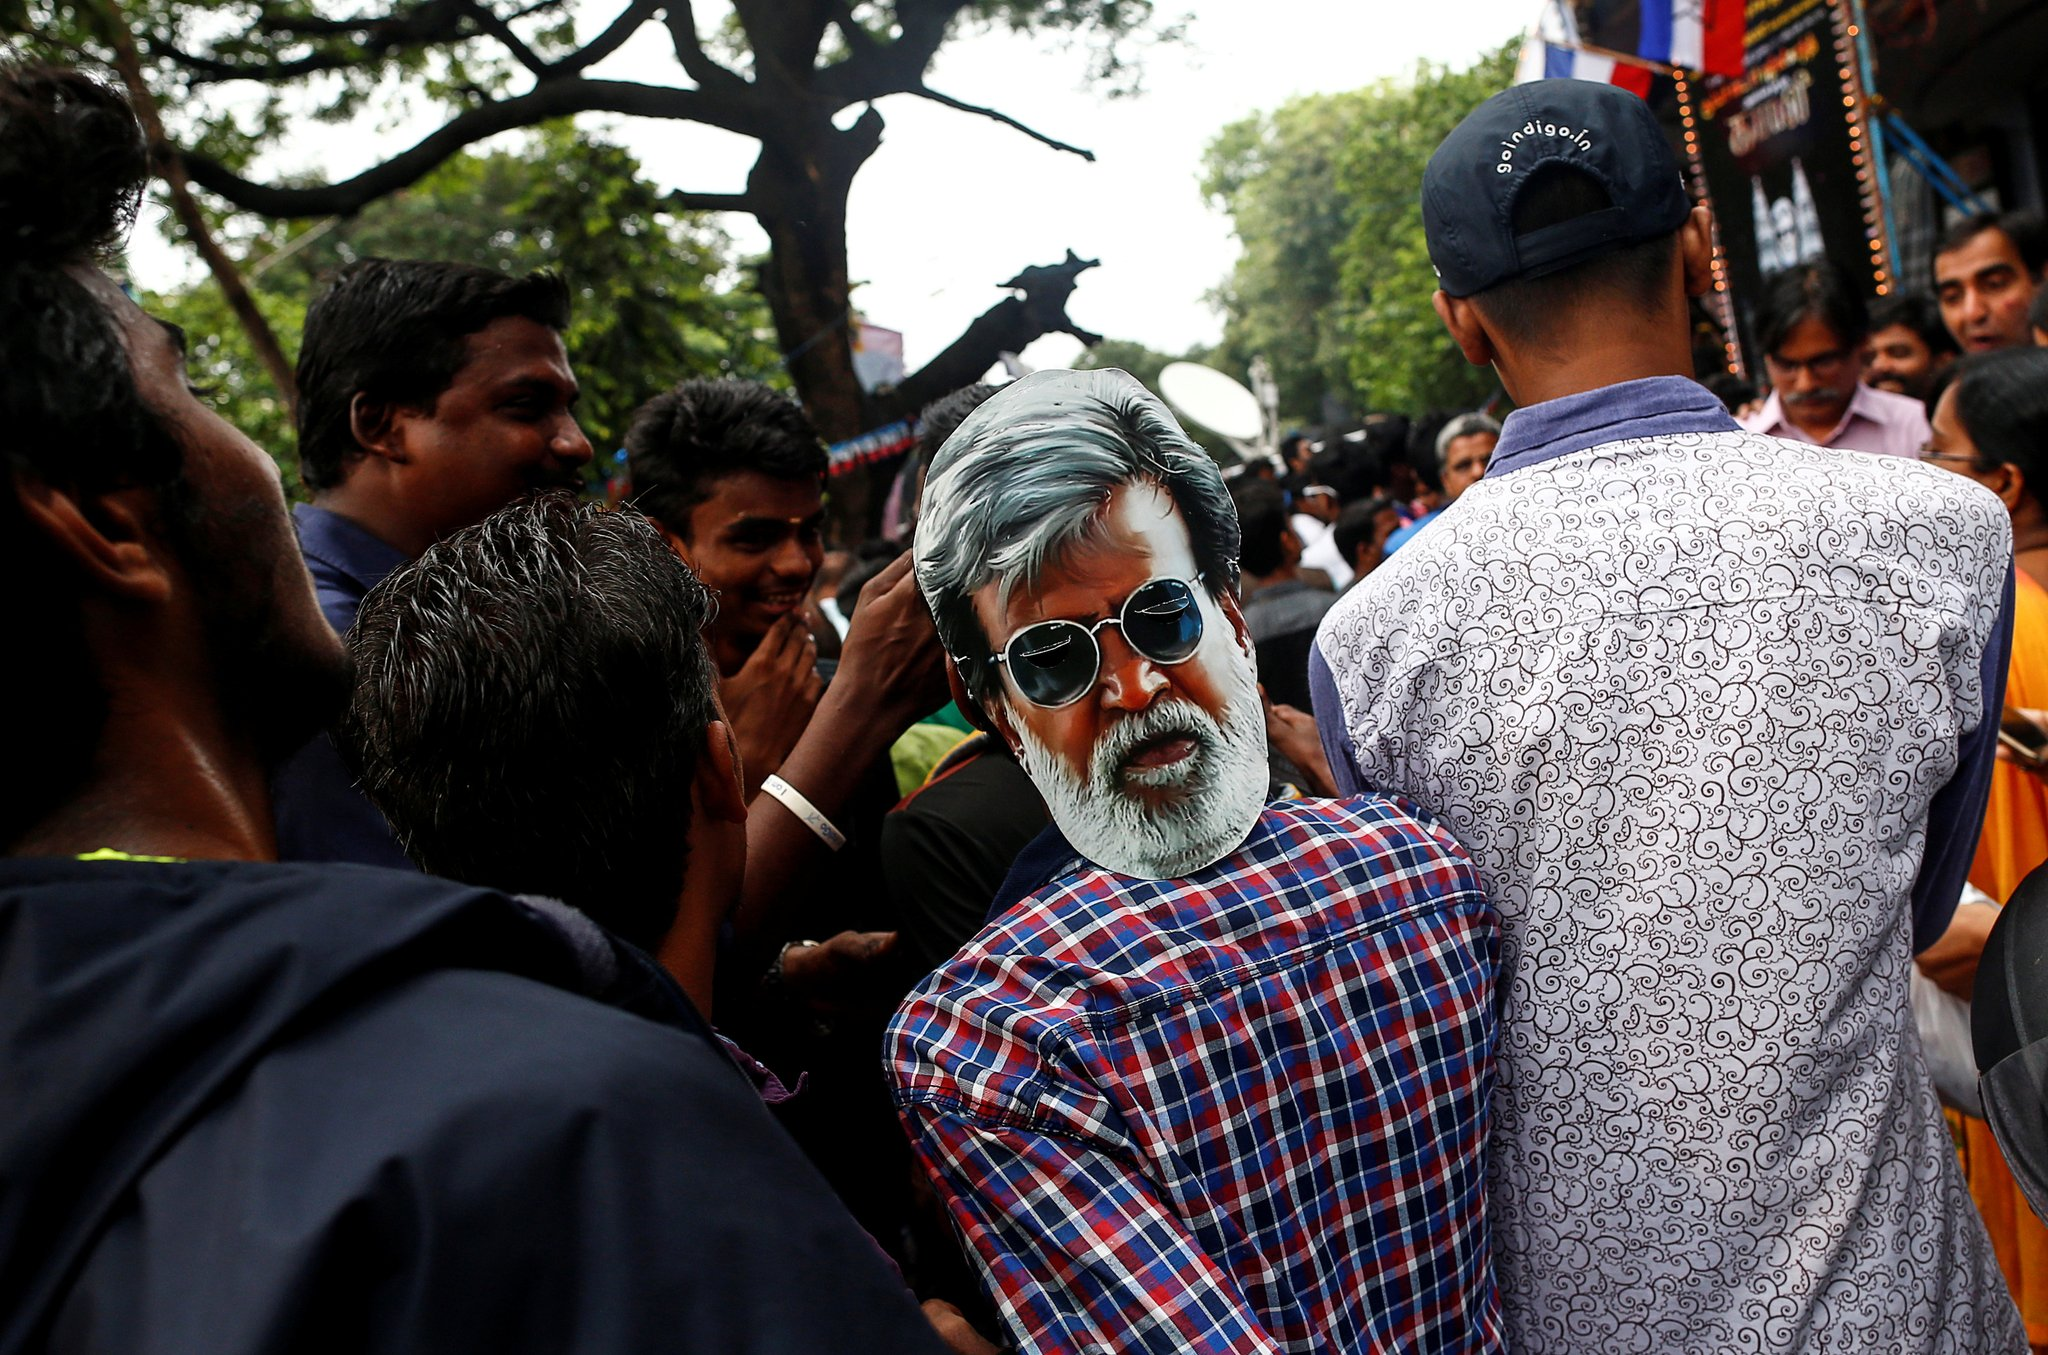 kabali 3rd day collection, kabali 3 days total collection, kabali box office collection, kabali total collection